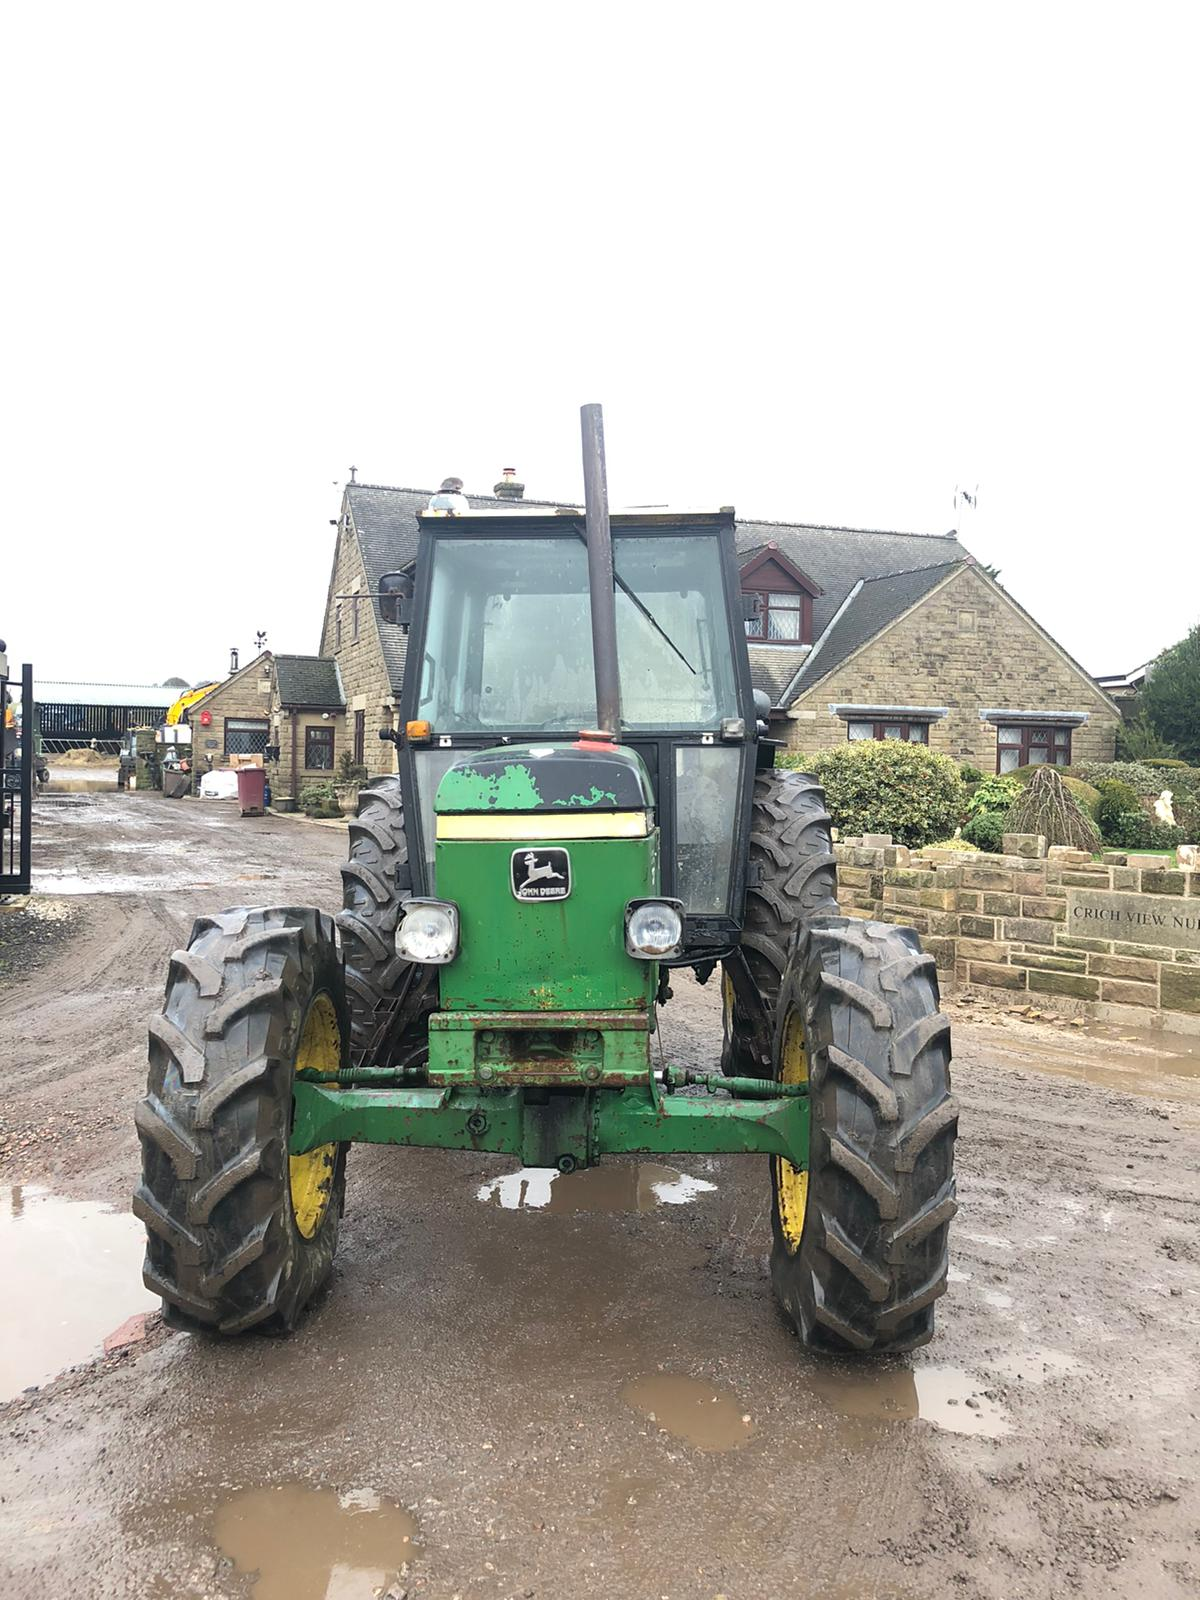 Lot 36 - JOHN DEERE 2140 GREEN / YELLOW TRACTOR, 4 WHEEL DRIVE, RUNS, WORKS AND DRIVES *PLUS VAT*